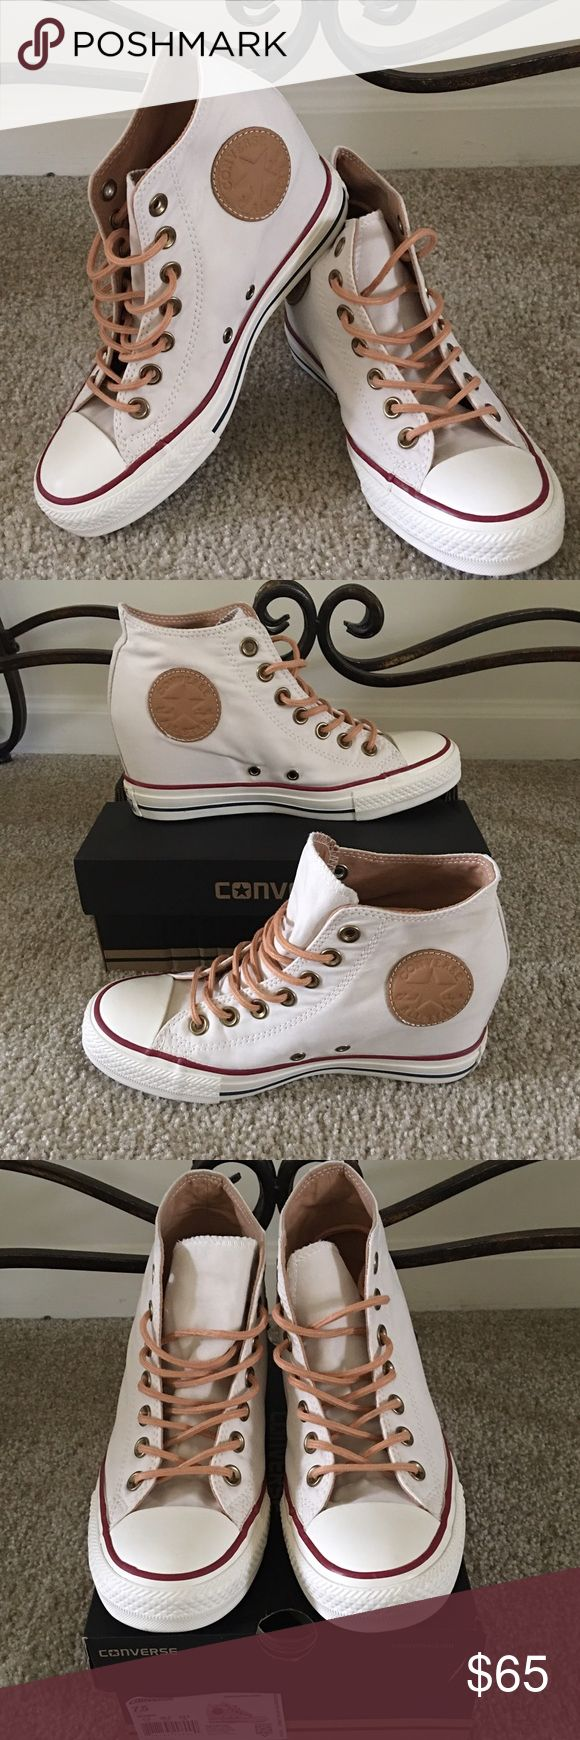 Converse Chuck Taylor Lux Mid  Brand new with box  It has a hidden 2 1/2 inch wedge, canvas lining and cushioned footbed. Converse Shoes Sneakers